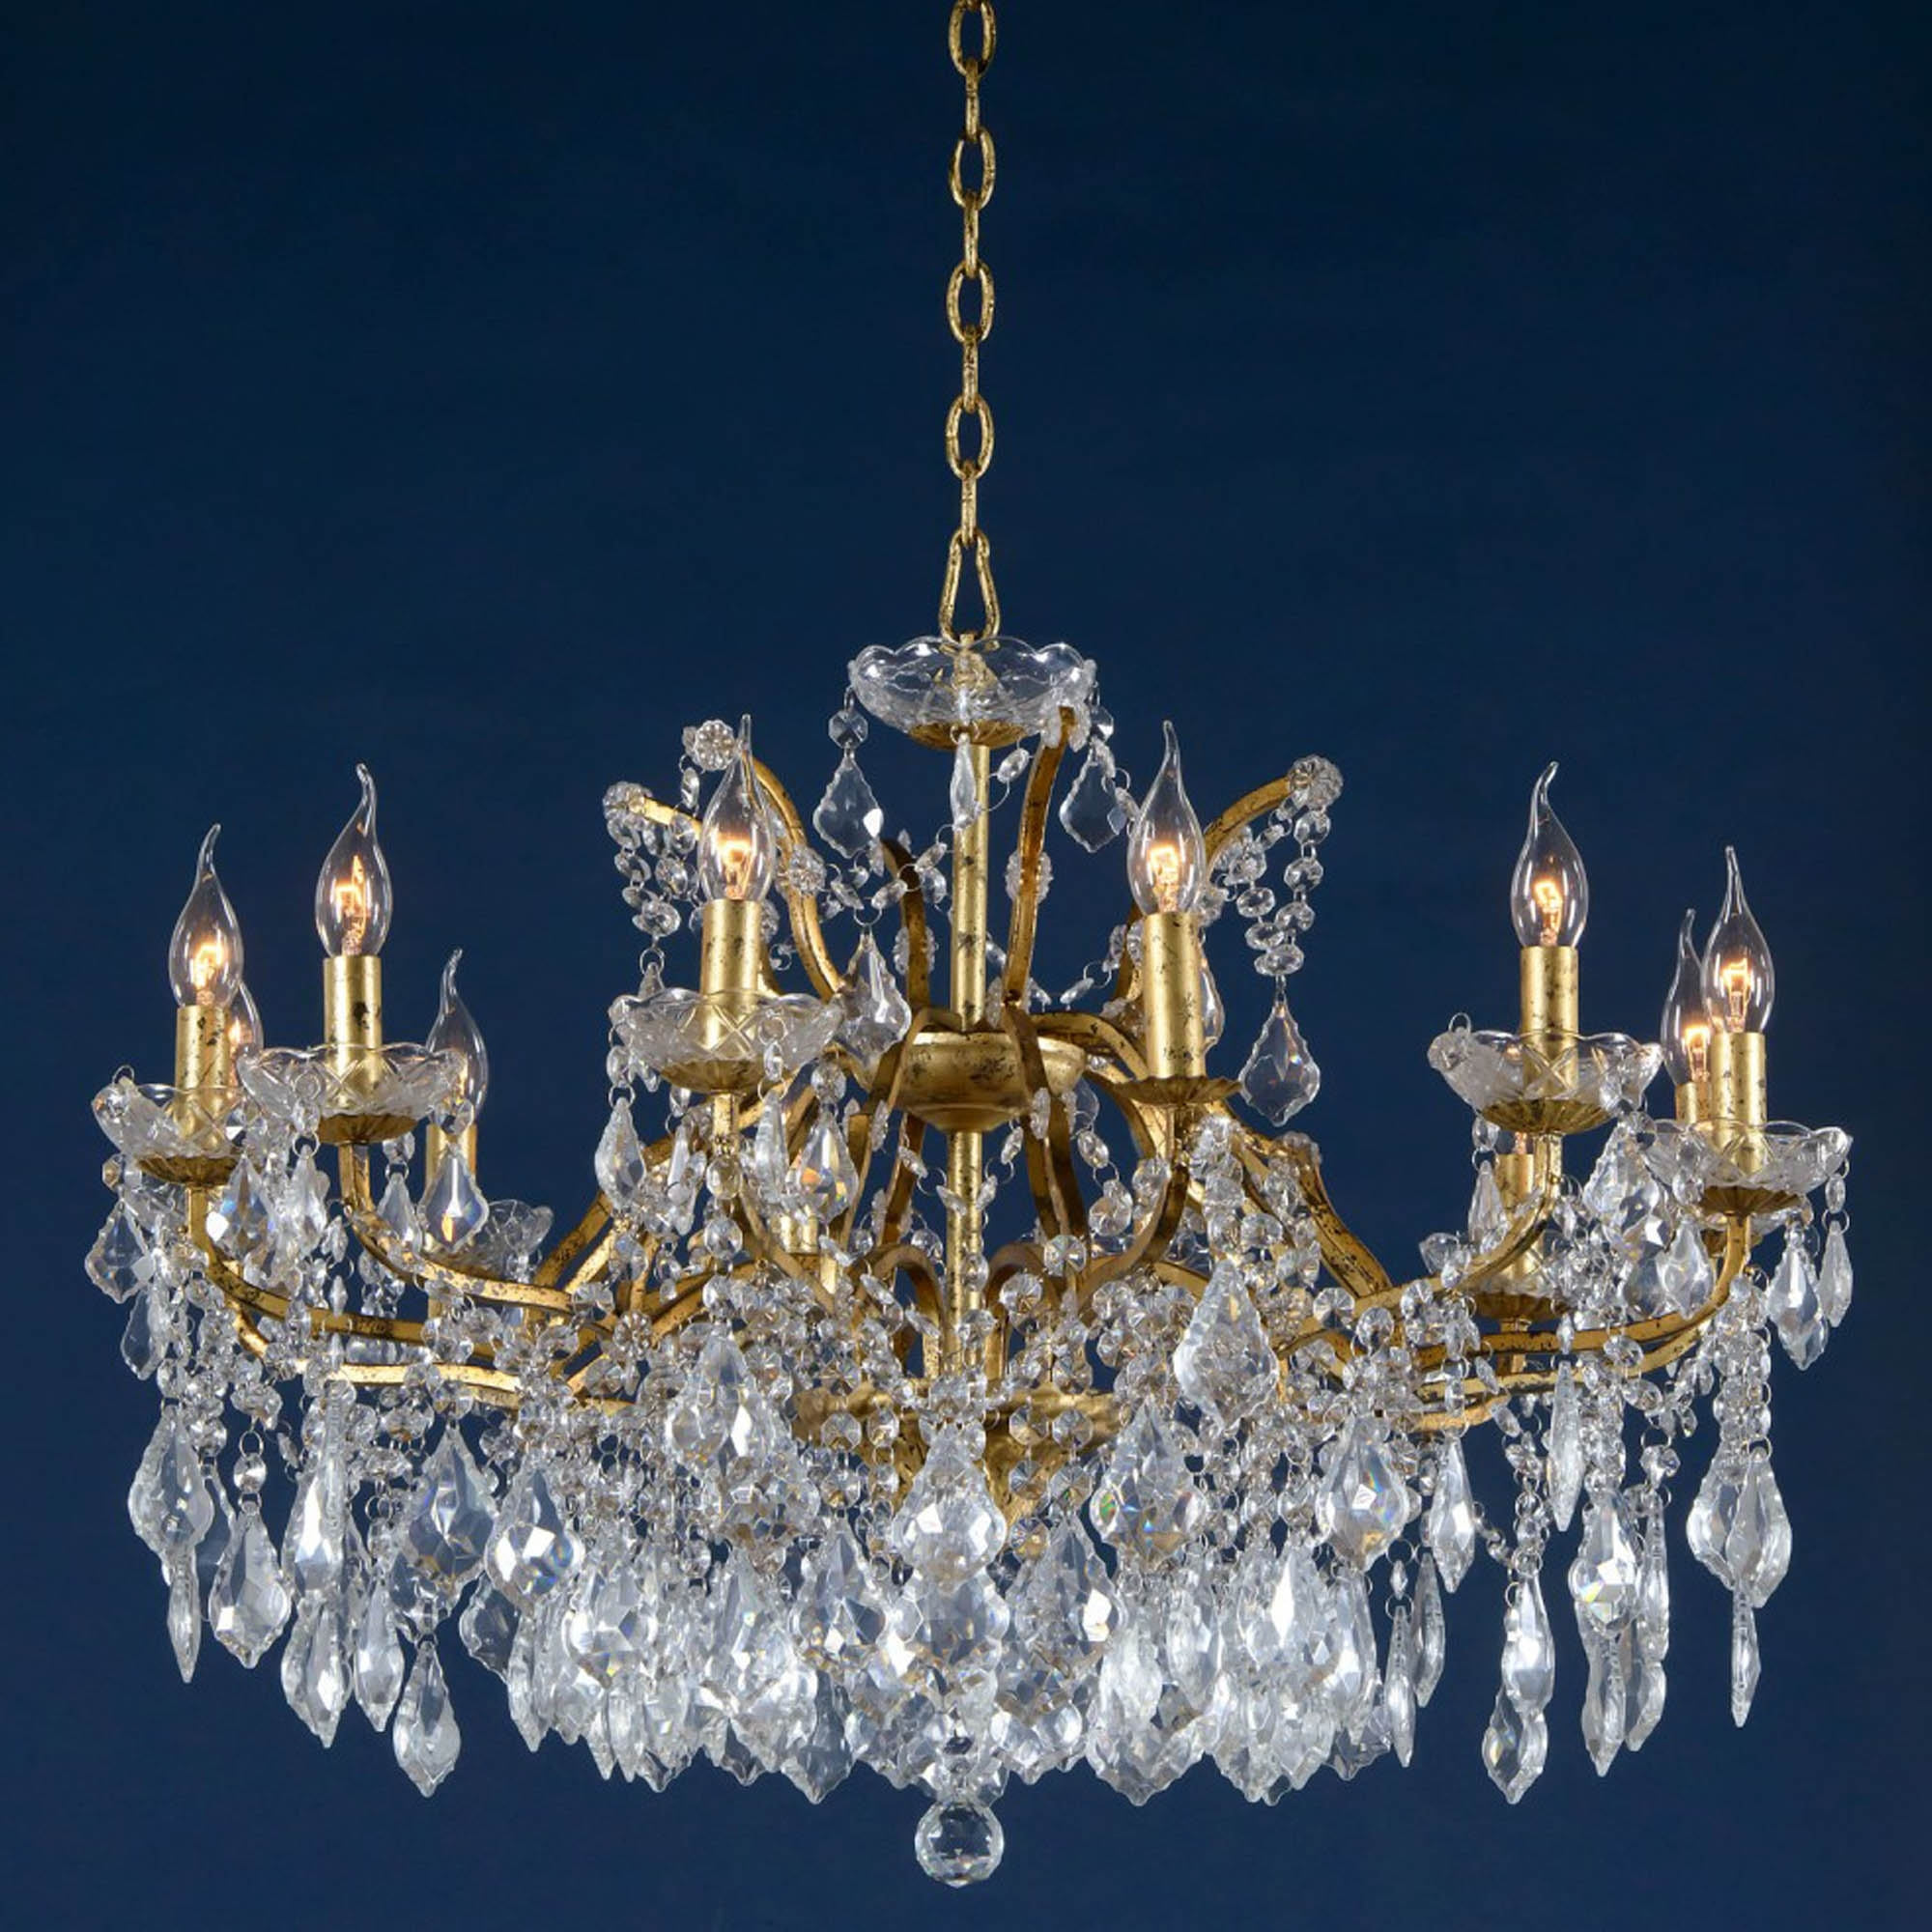 Vivianne gold antique french style chandelier chandeliers vivianne gold antique french style chandelier aloadofball Choice Image